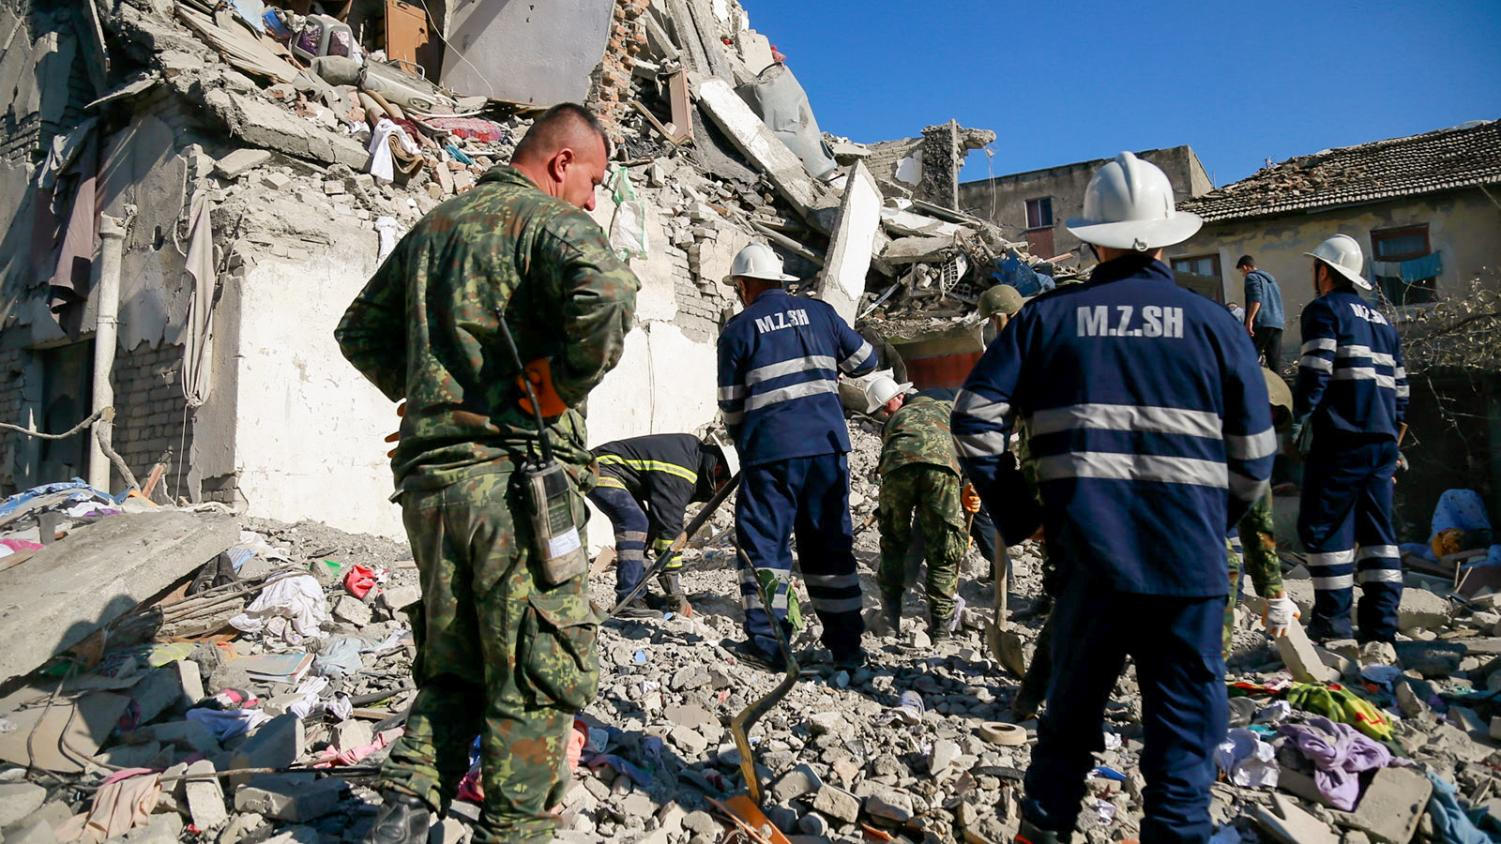 A 6.4 magnitude earthquake destroyed buildings in Albania on Nov. 26.